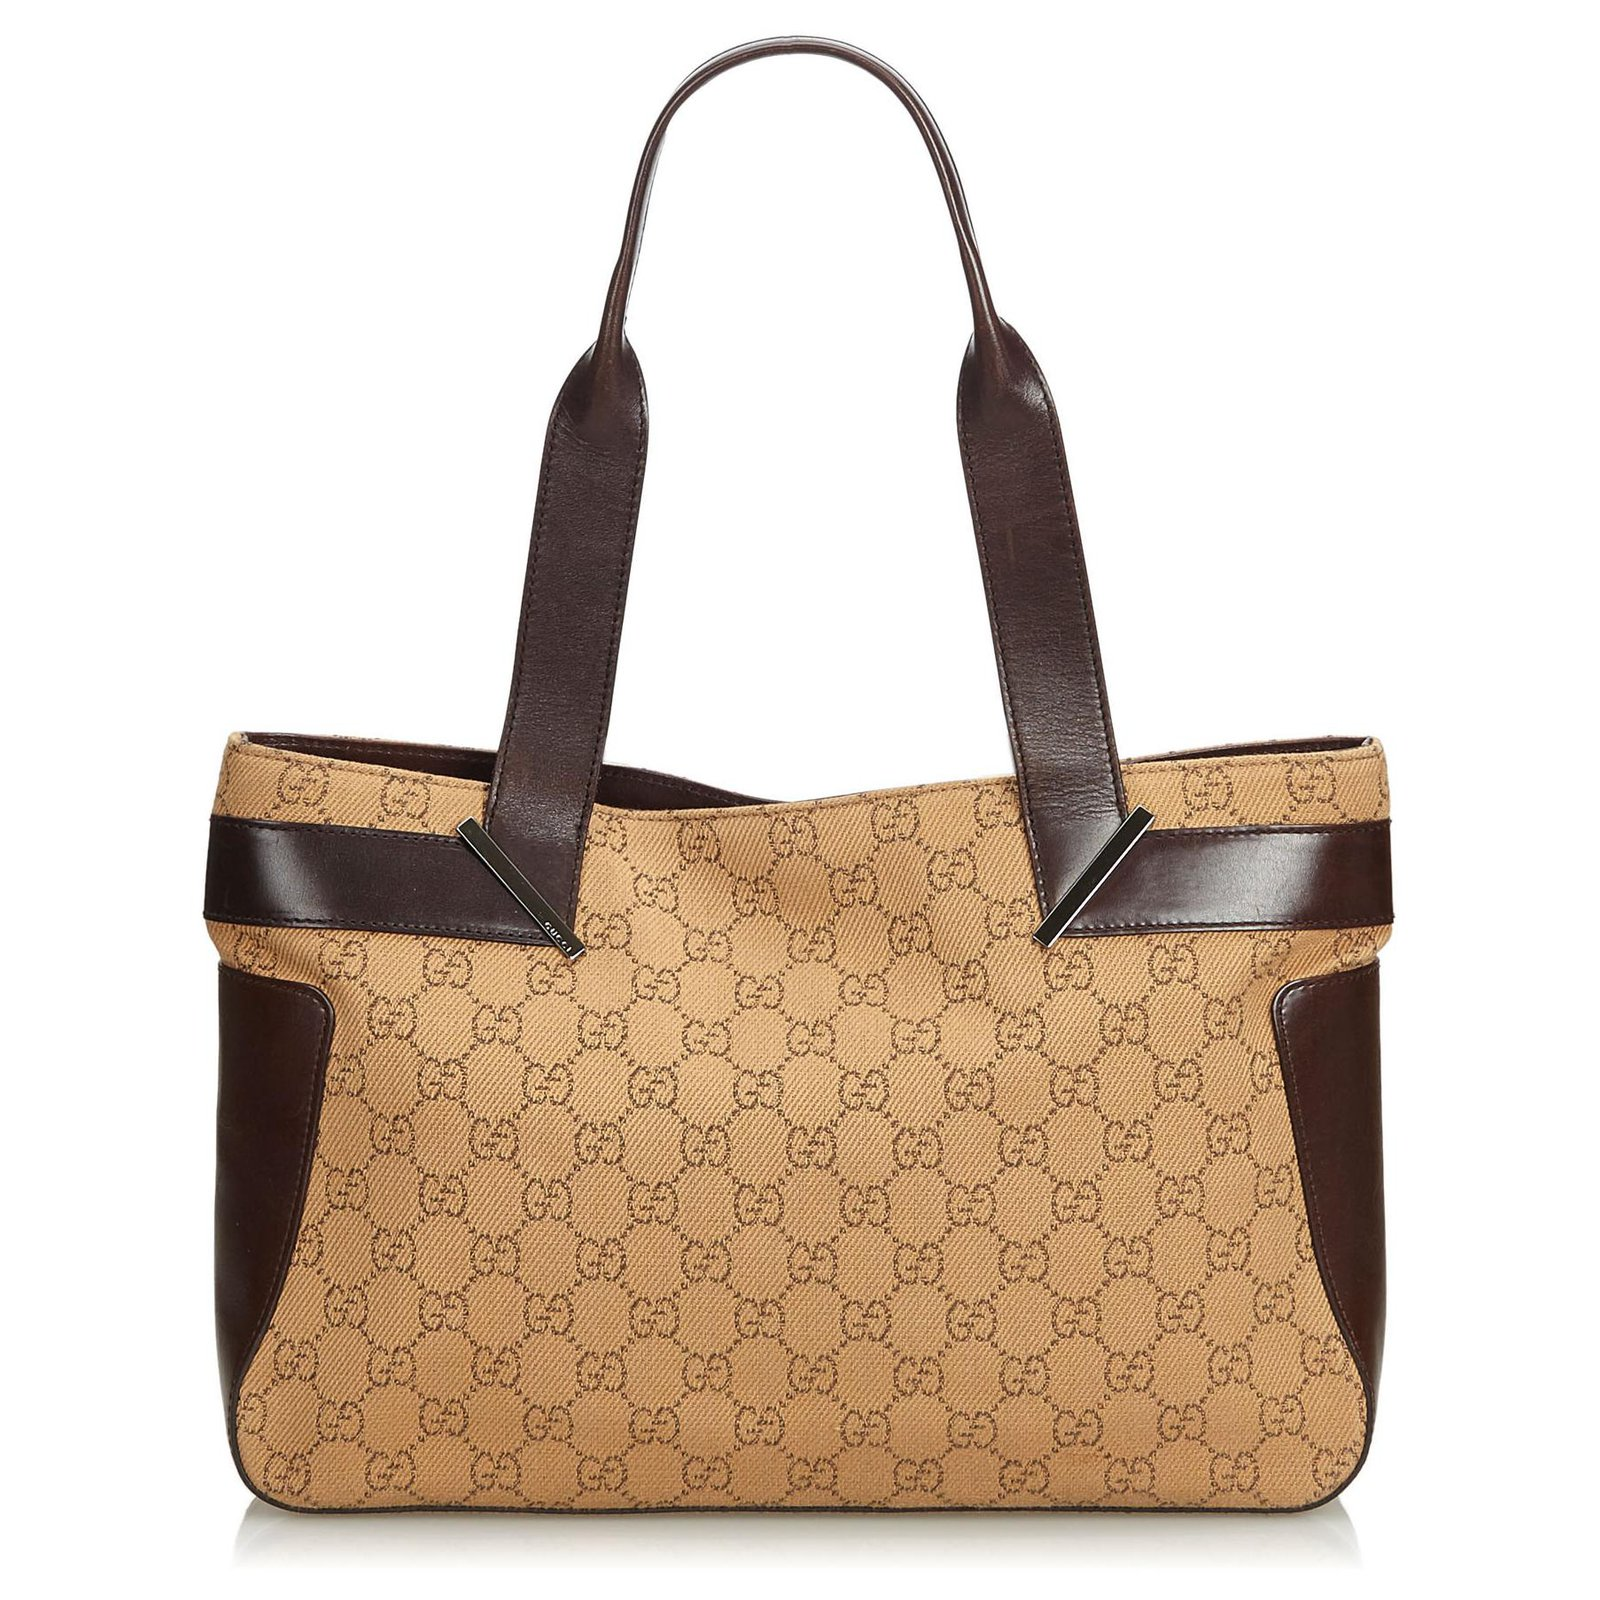 4a5c5a591282 Gucci Gucci Brown GG Jacquard Tote Bag Totes Leather,Other,Cloth Brown,Light